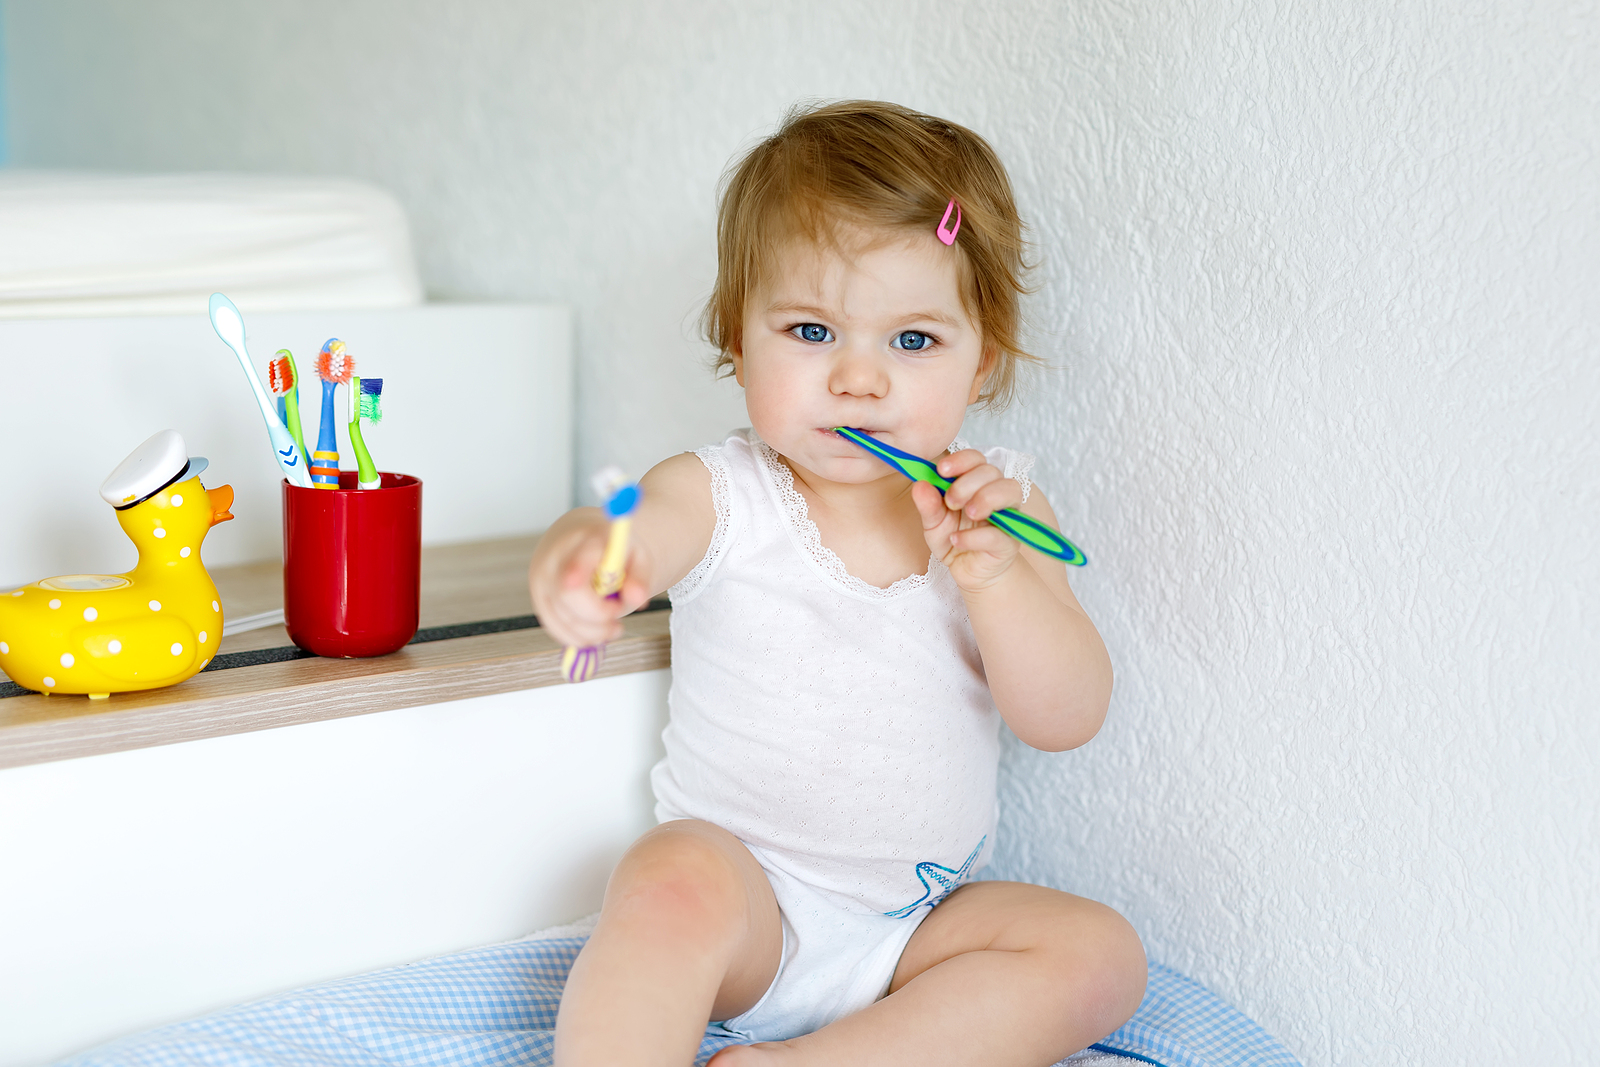 Little baby girl holding toothbrush and brushing first teeth.